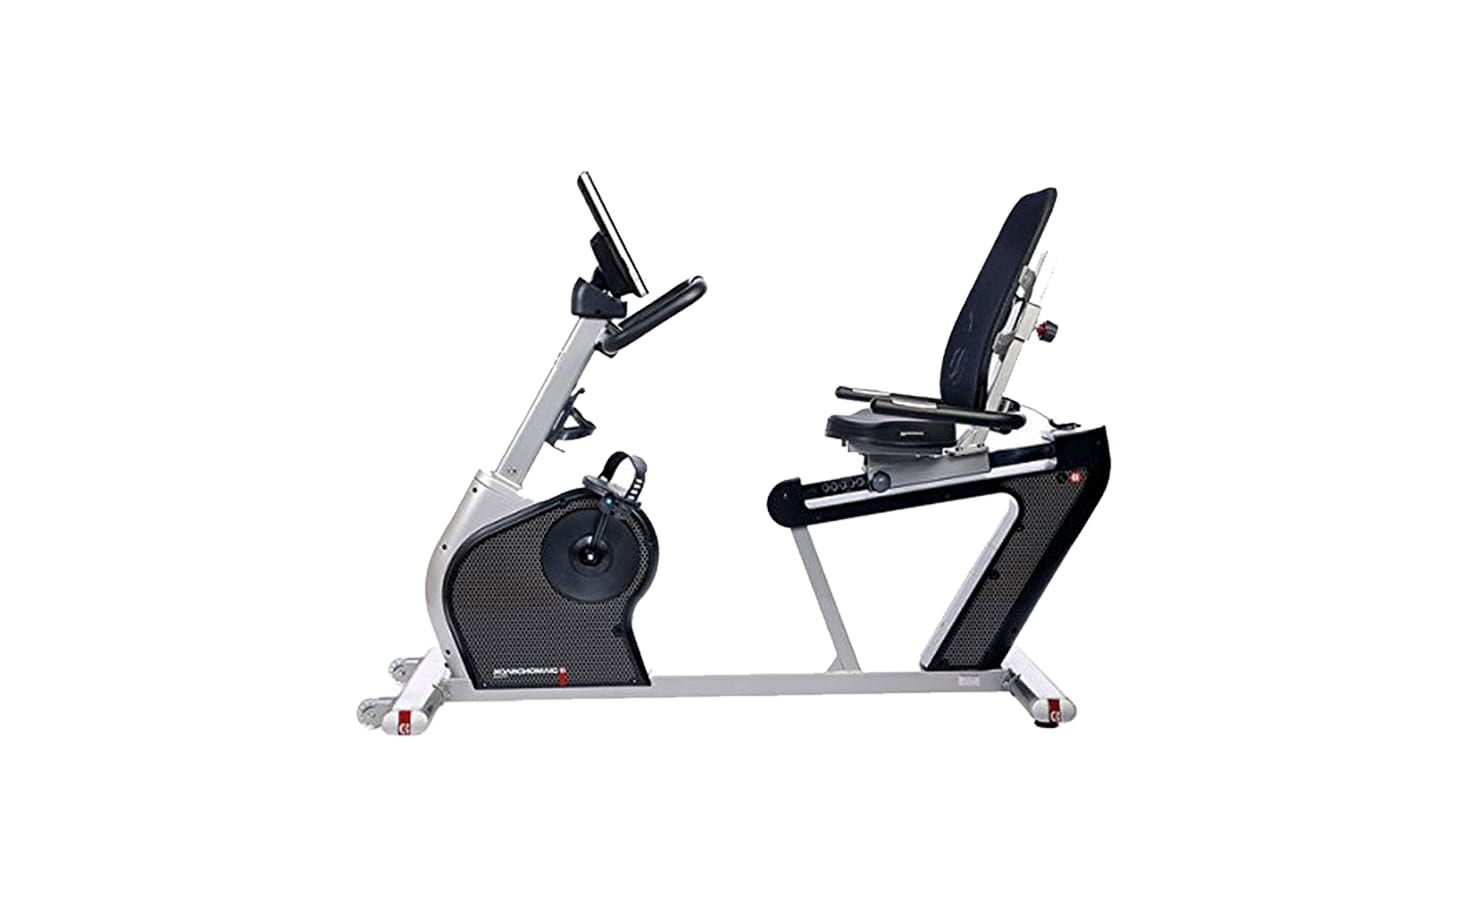 10.-Diamondback-510SR-Fitness-Recumbent-Bike